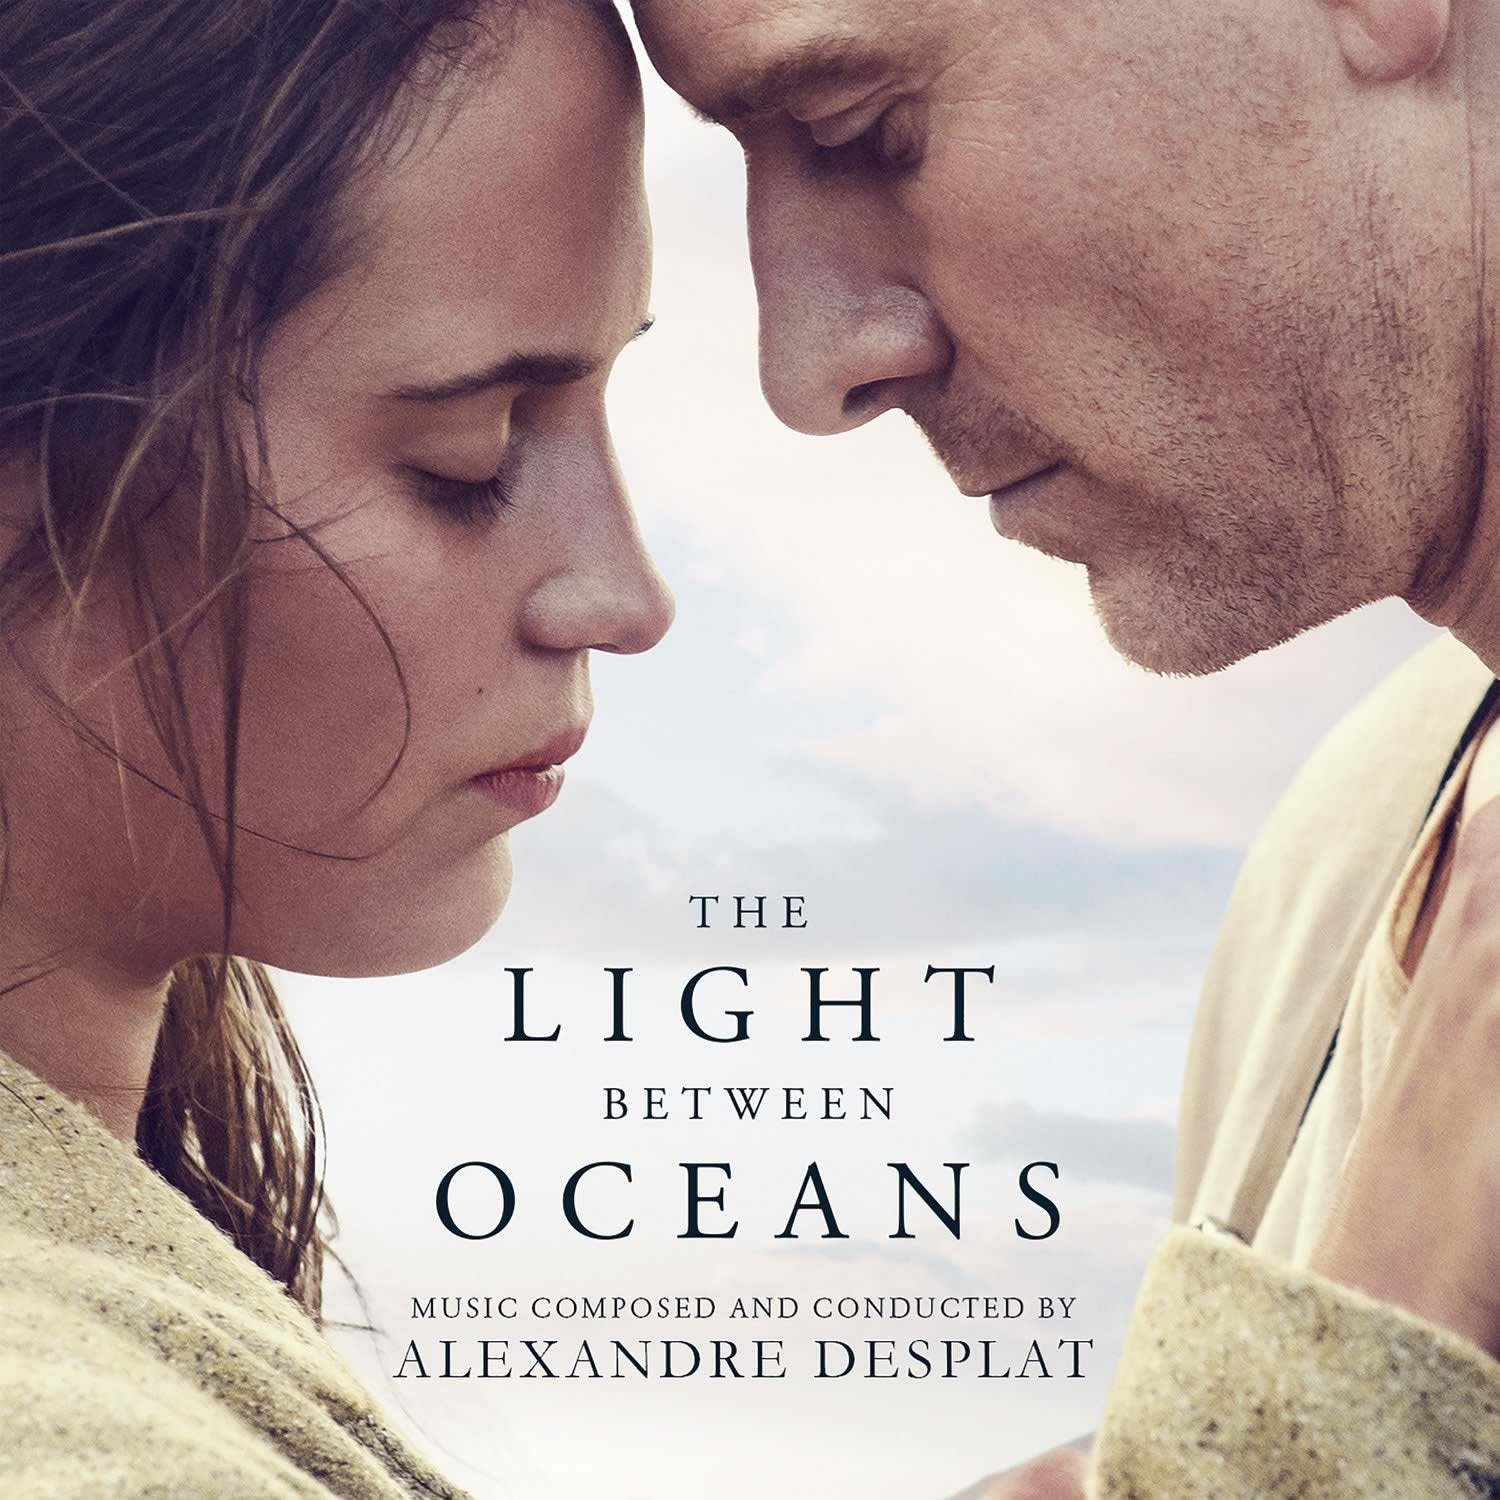 THE LIGHT BETWEEN OCEANS - THE ORIGINAL MOTION PICTURE SOUNDTRACK (AUDIO CD)